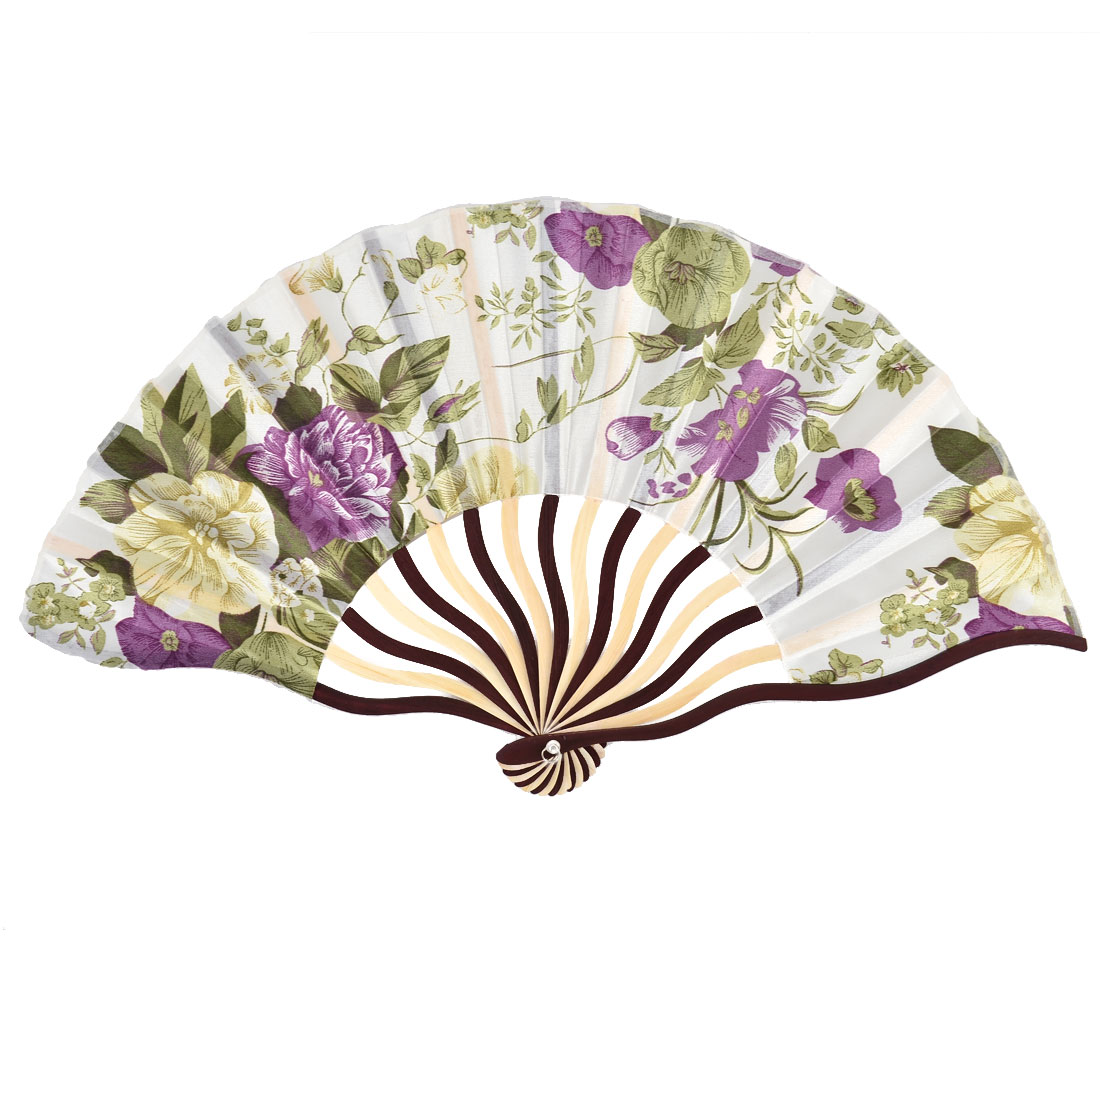 Bamboo Ribs Flower Leaves Pattern Portable Folding Hand Fan Colorful w Bag